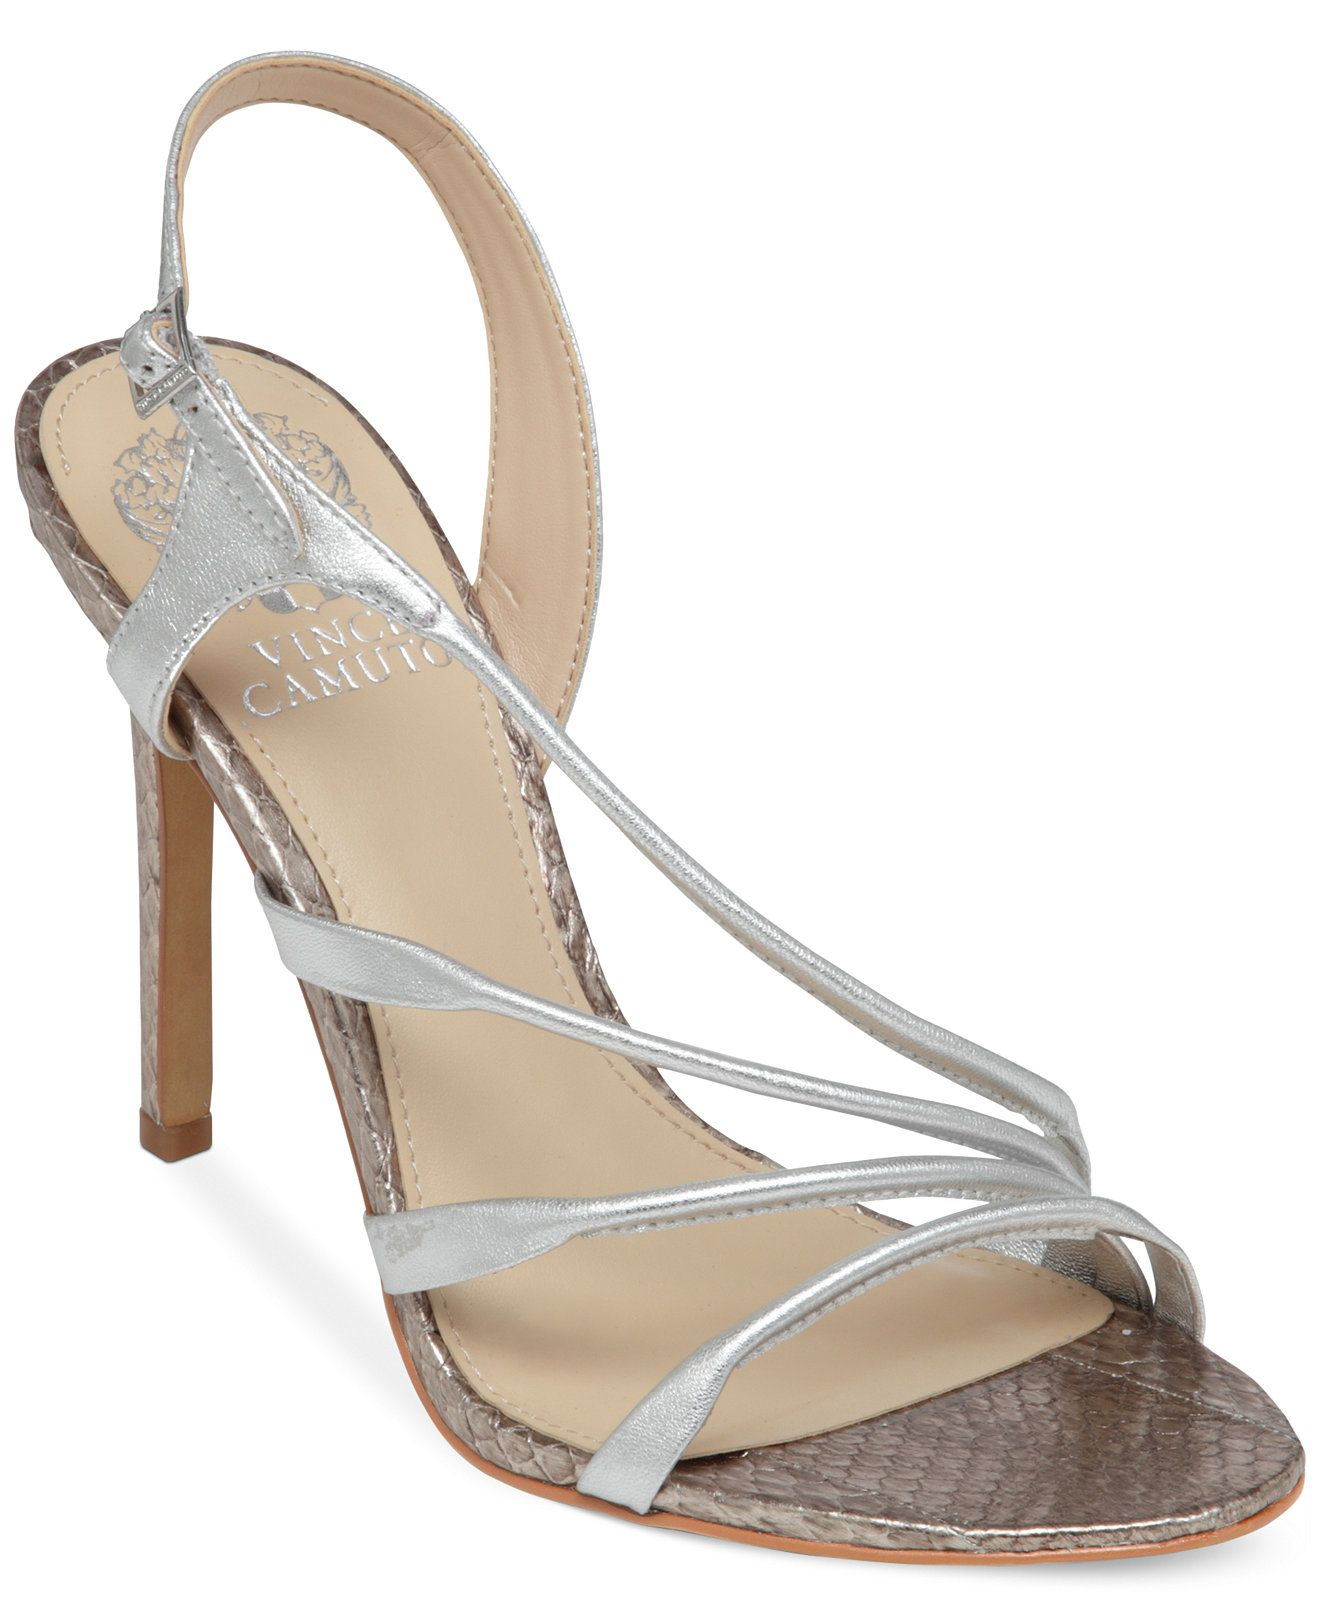 baabb62993f Vince Camuto Tiernan Asymmetrical Evening Sandals - Vince Camuto - Shoes -  Macy s